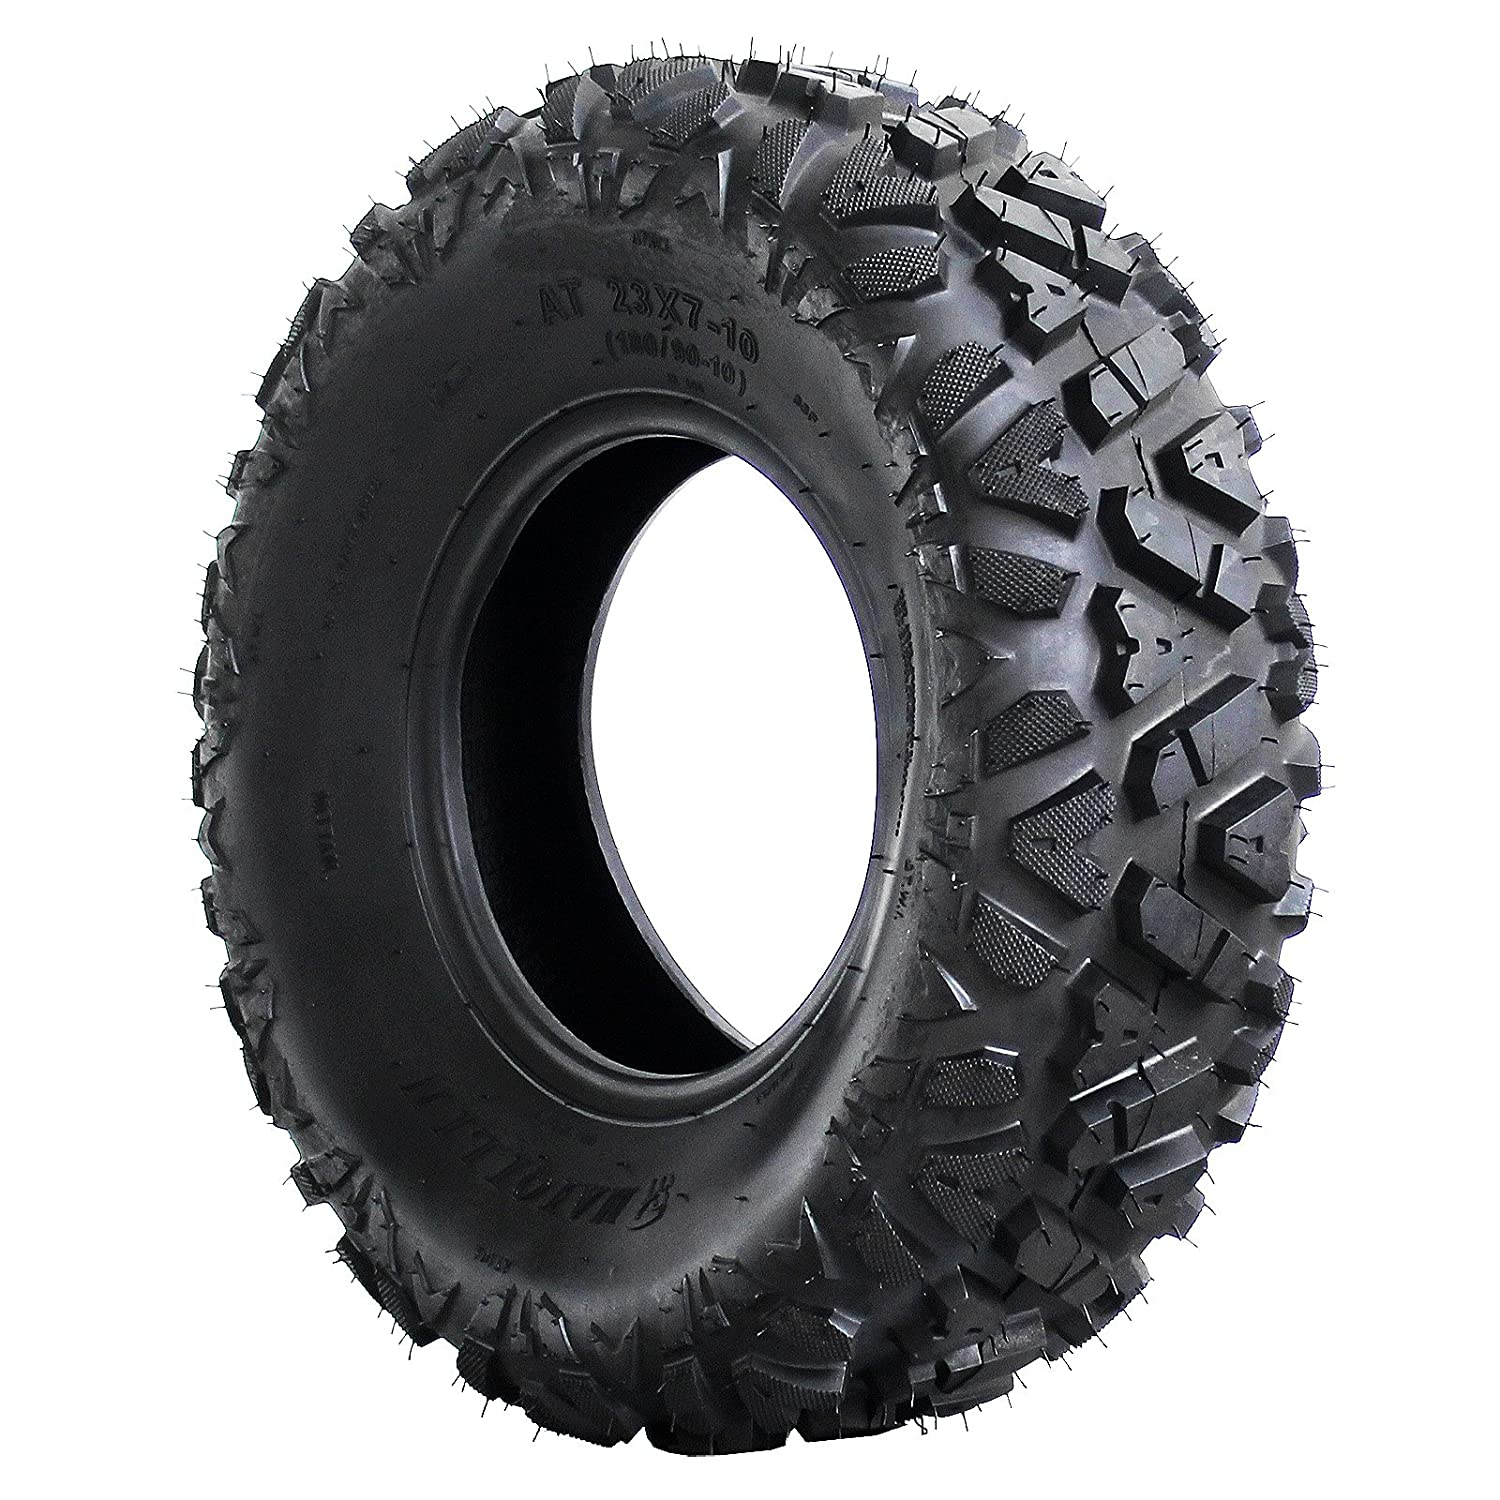 new AR DONGFANG ATV Tires JK-600 Quad UTV Go Kart Tires ATV